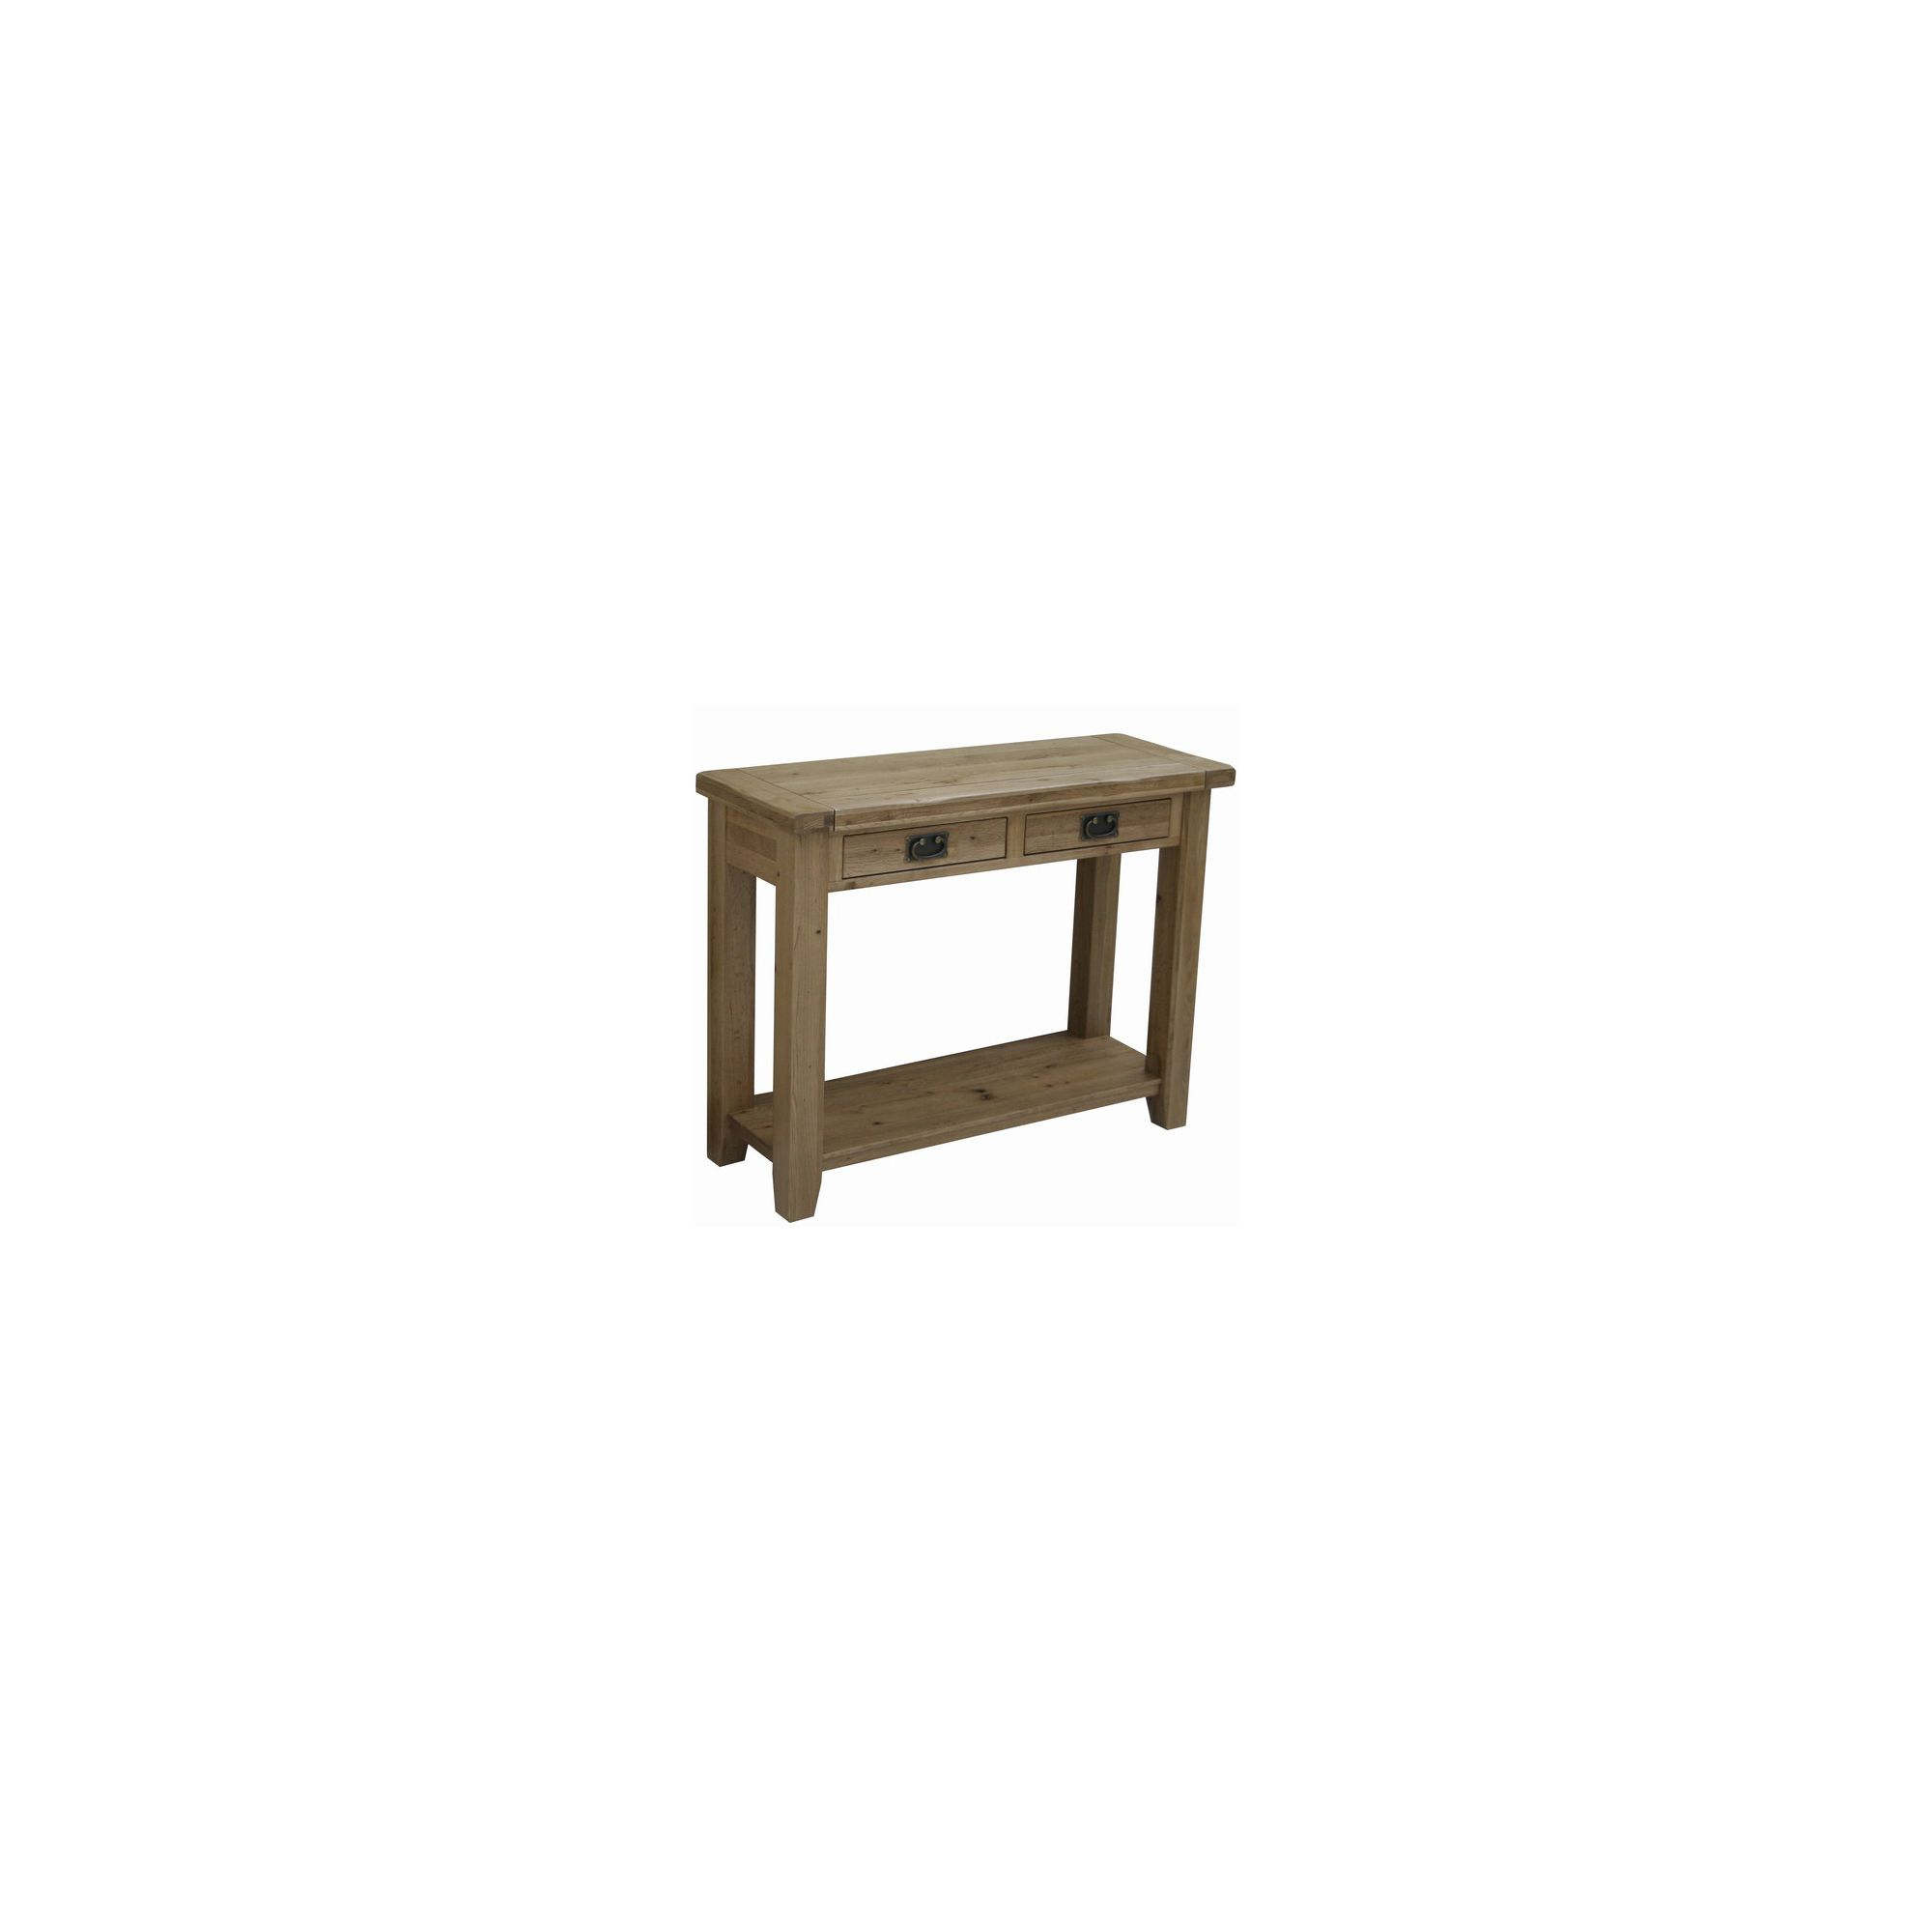 Marble Coffee Table Tesco: Rutland Solid American White Oak Console Table